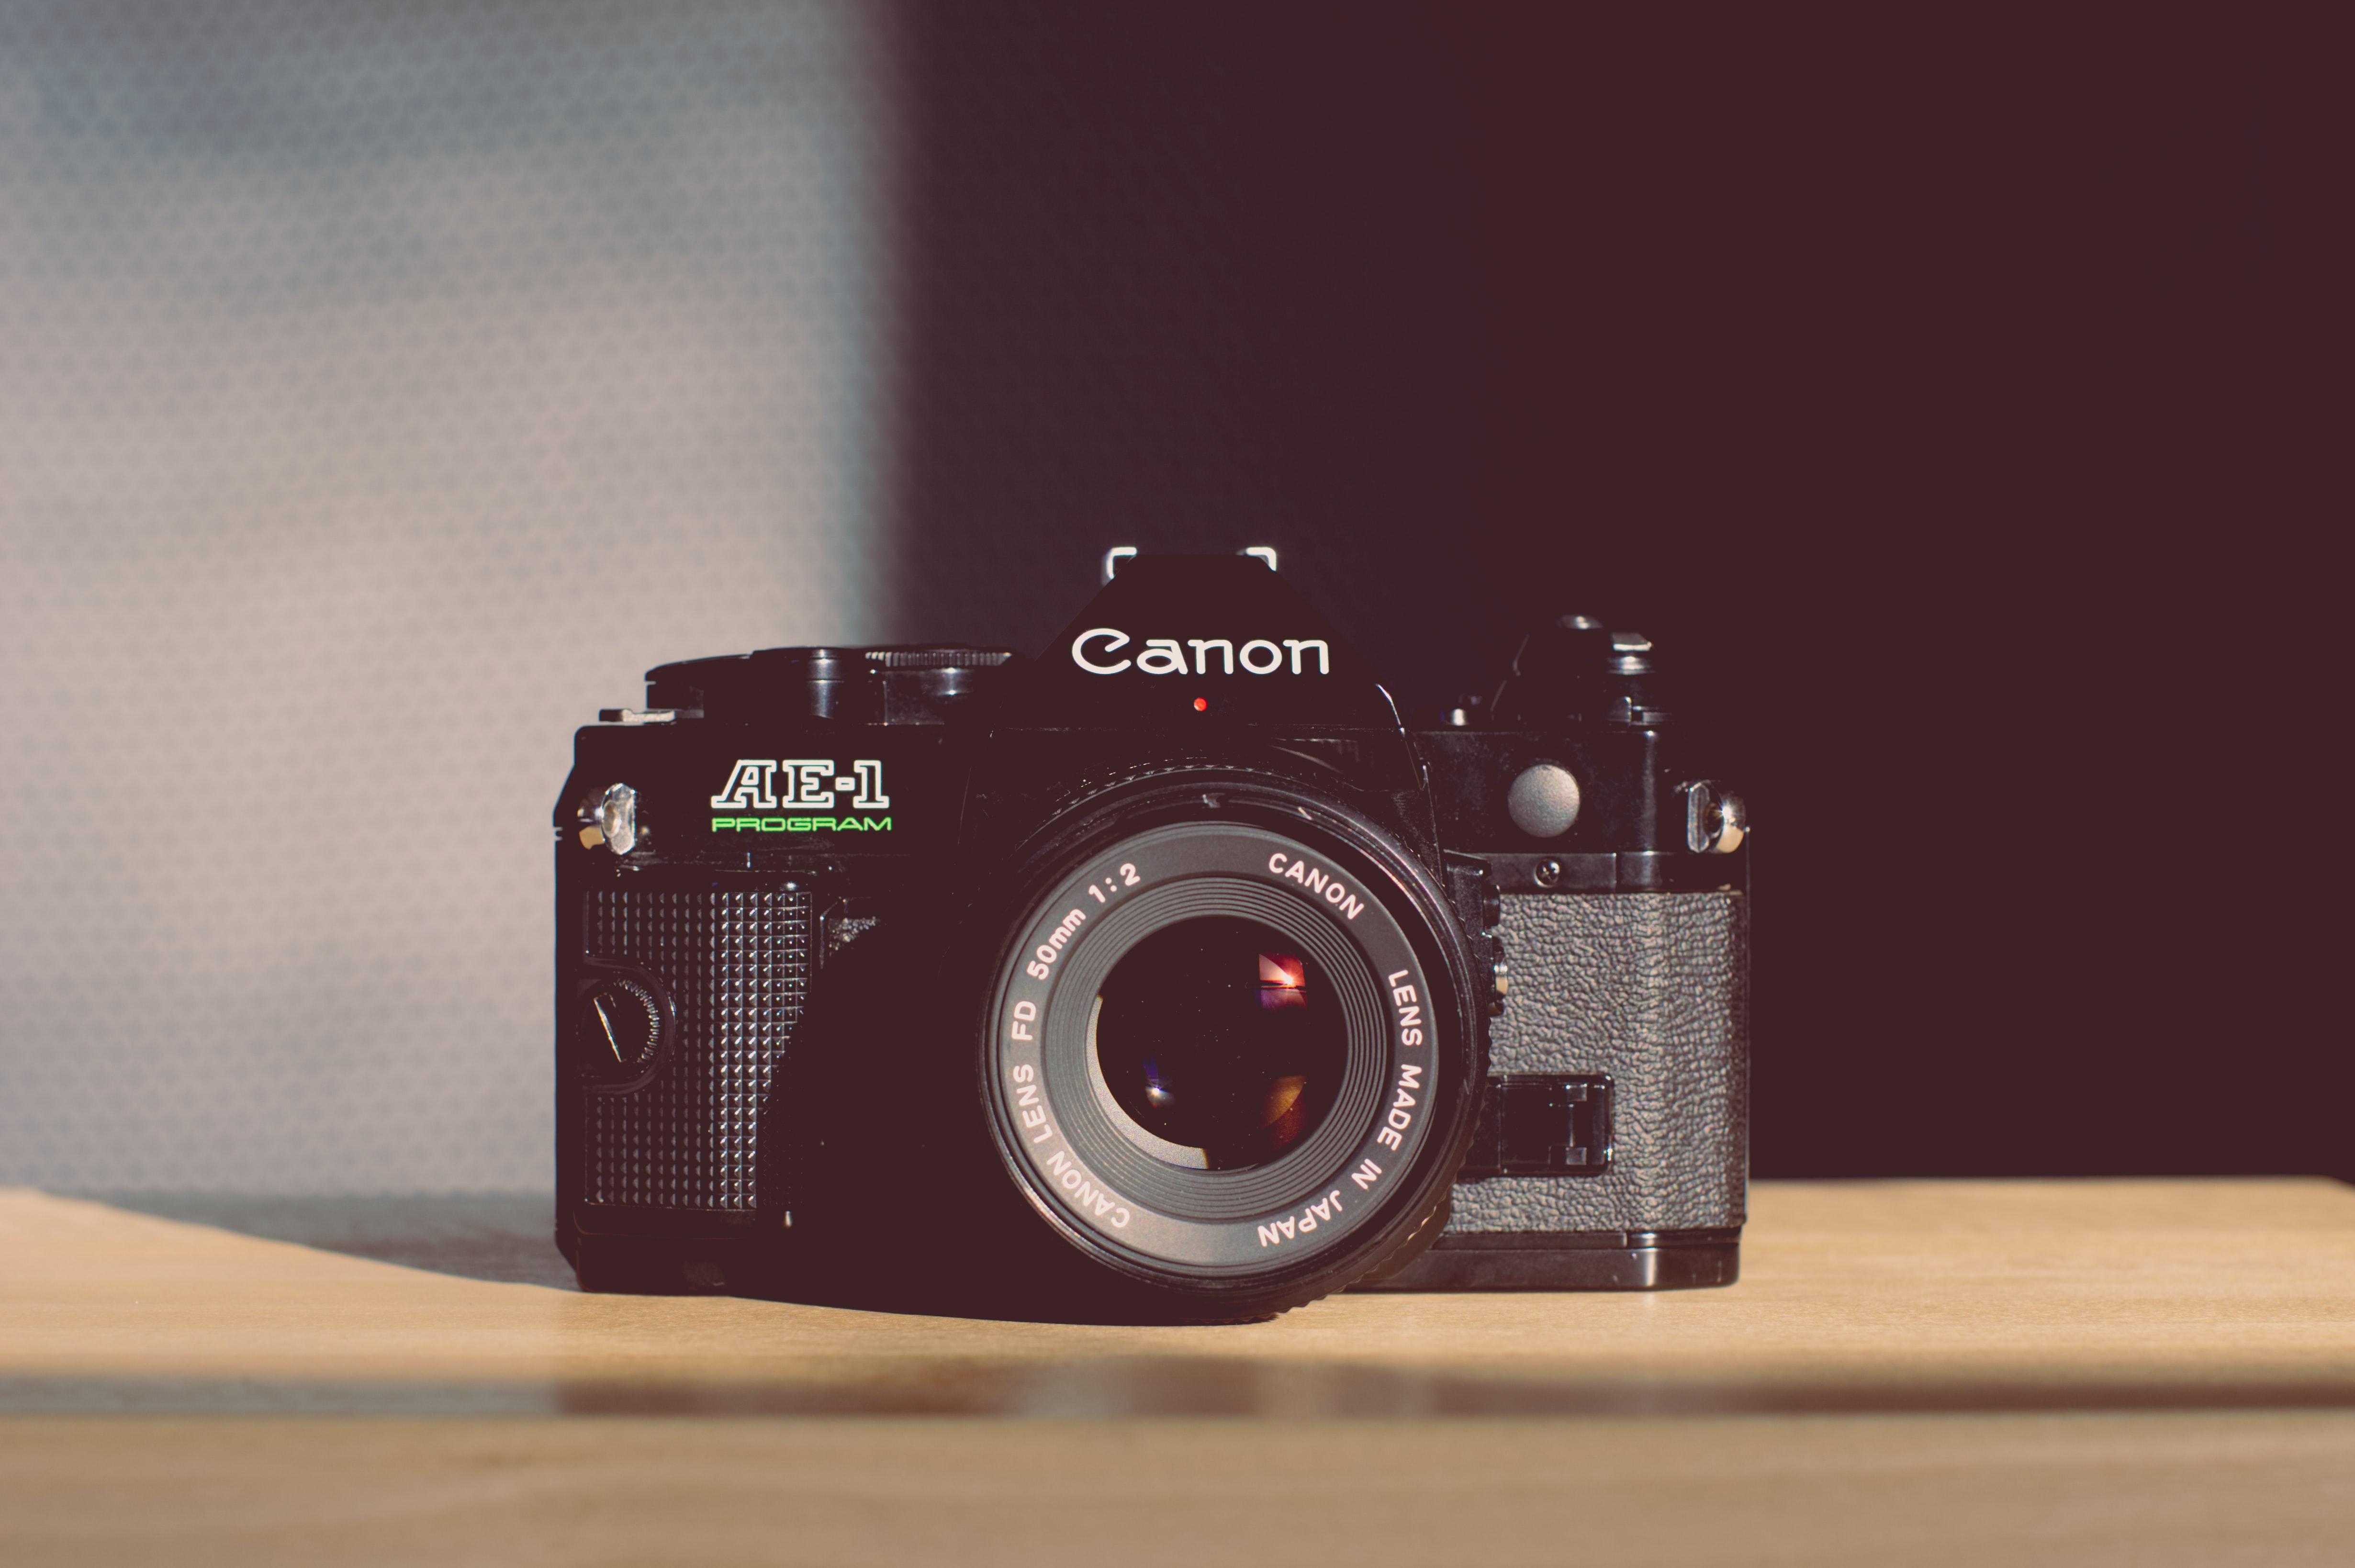 Vintage Canon AE-1 Program with a 50mm lens on a light colored wooden surface beside a partly shadowed wall